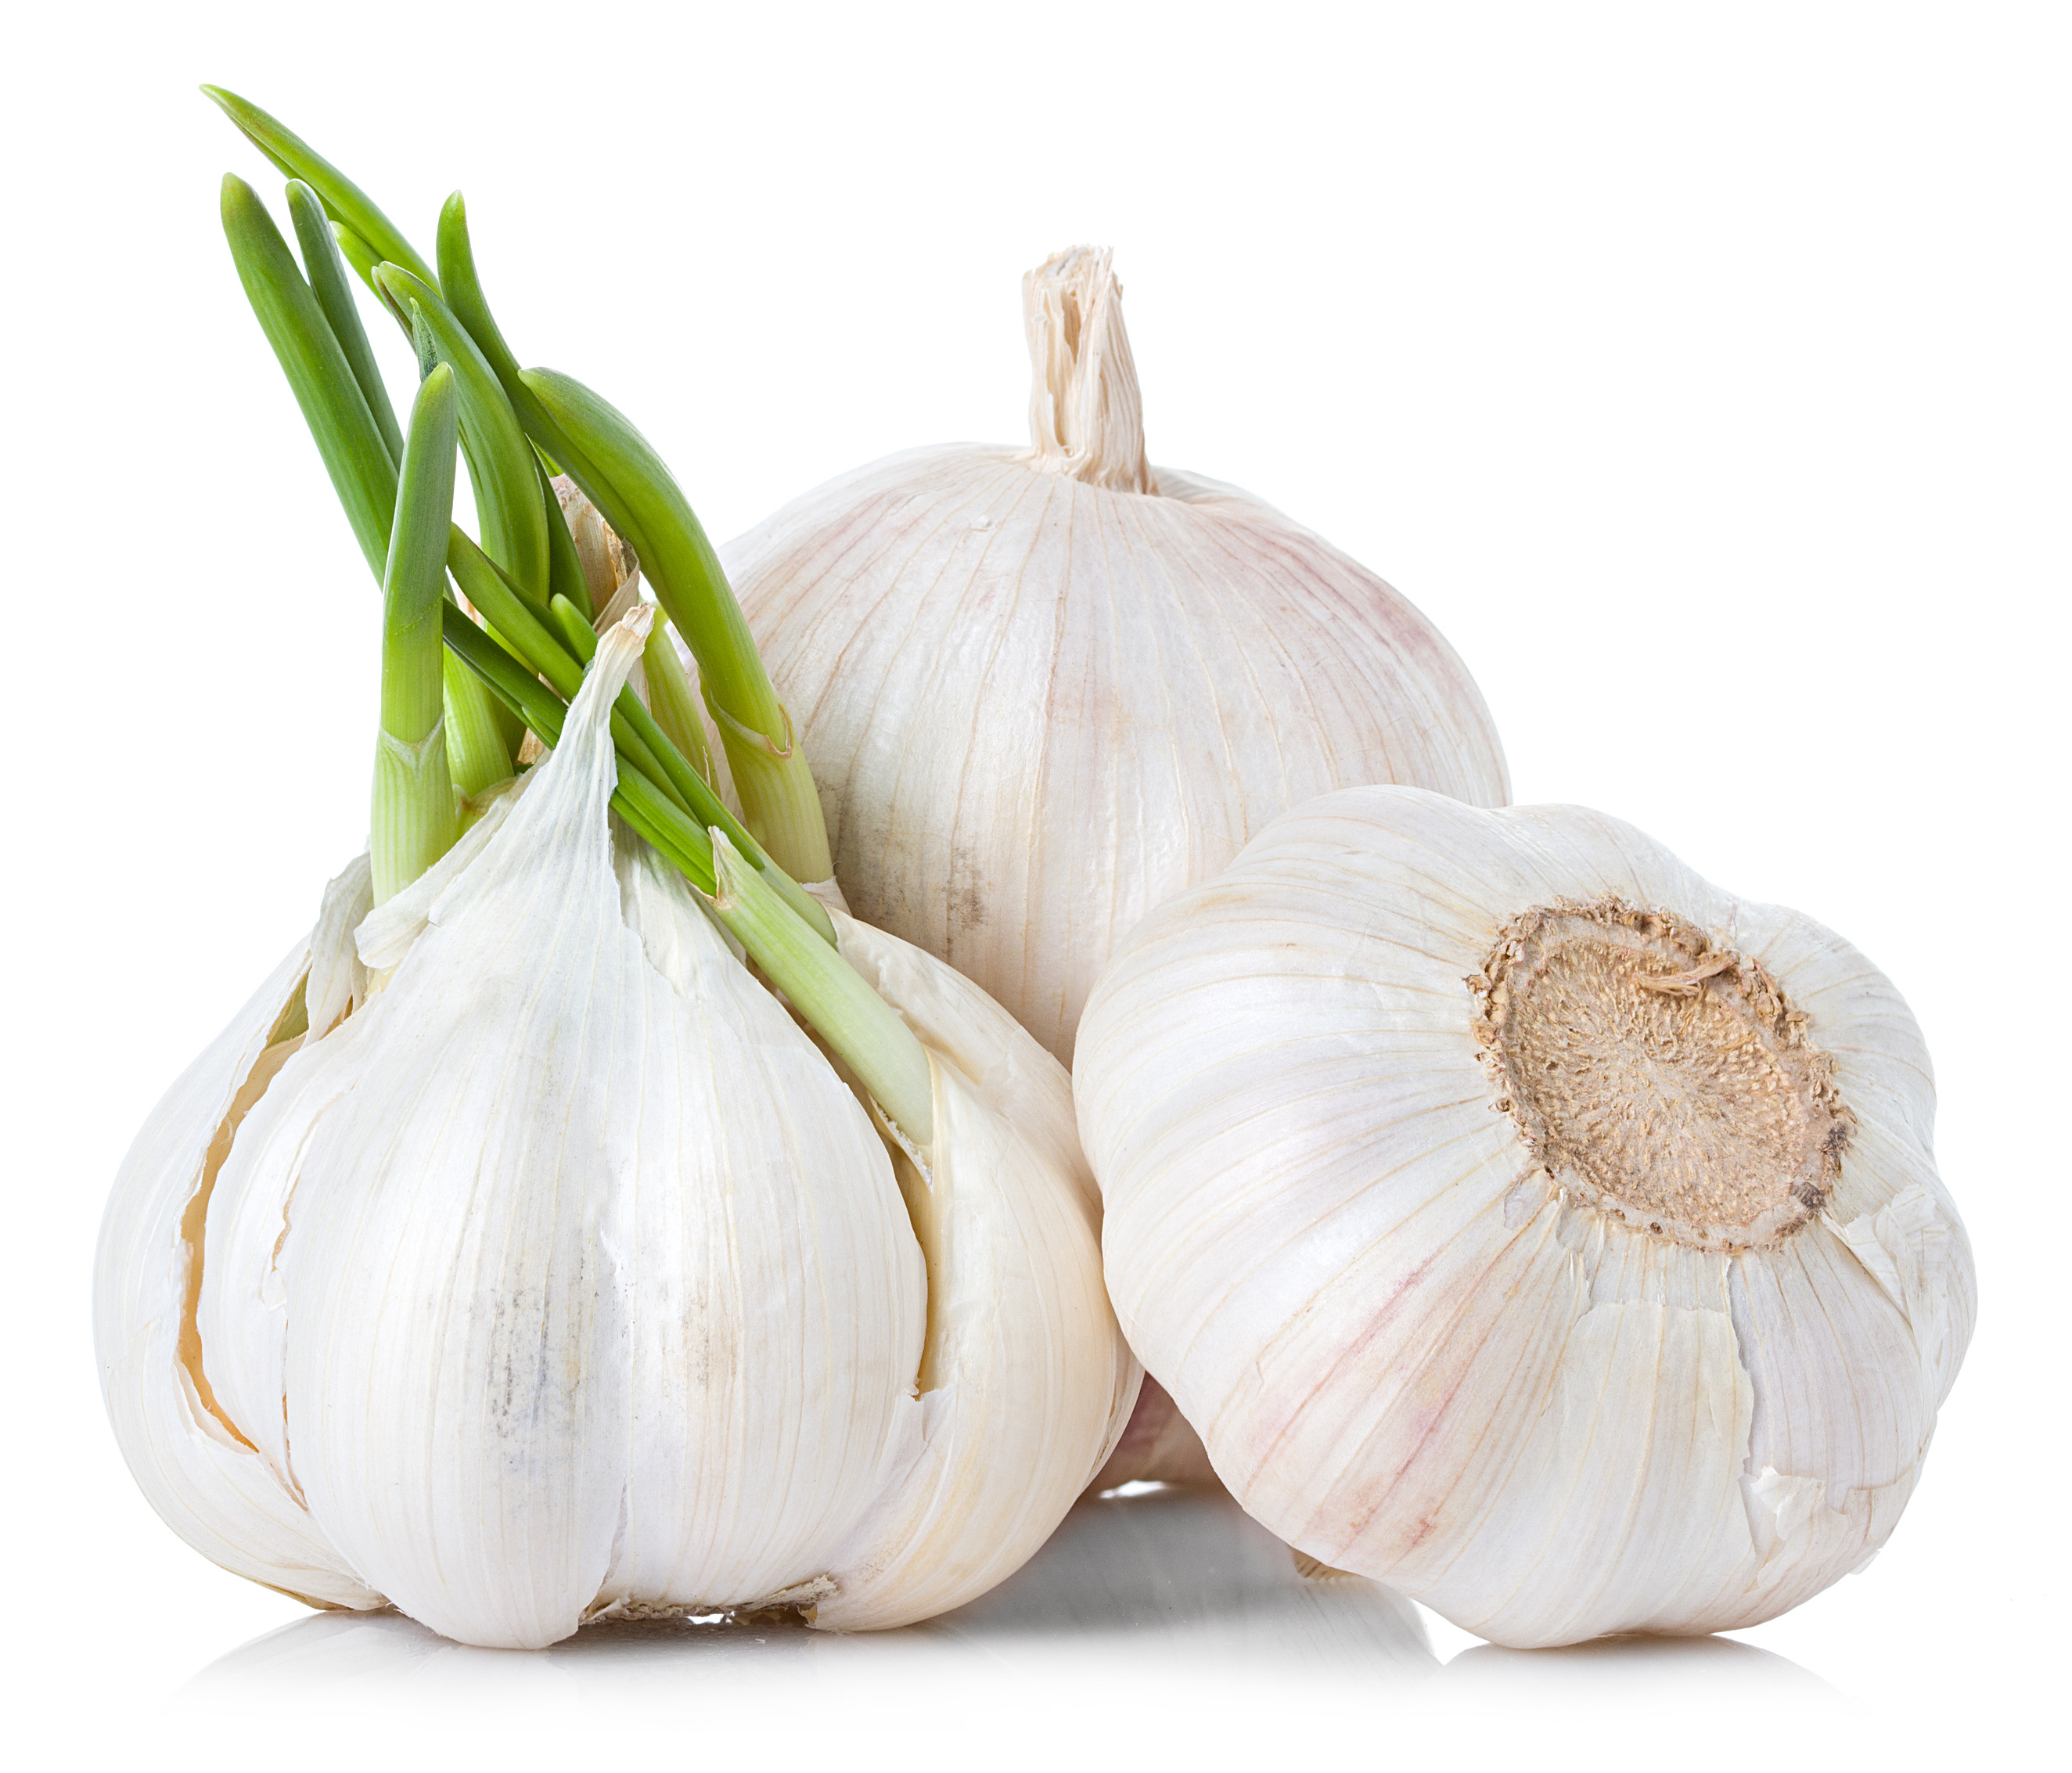 Garlic – लहसुन  IMAGES, GIF, ANIMATED GIF, WALLPAPER, STICKER FOR WHATSAPP & FACEBOOK